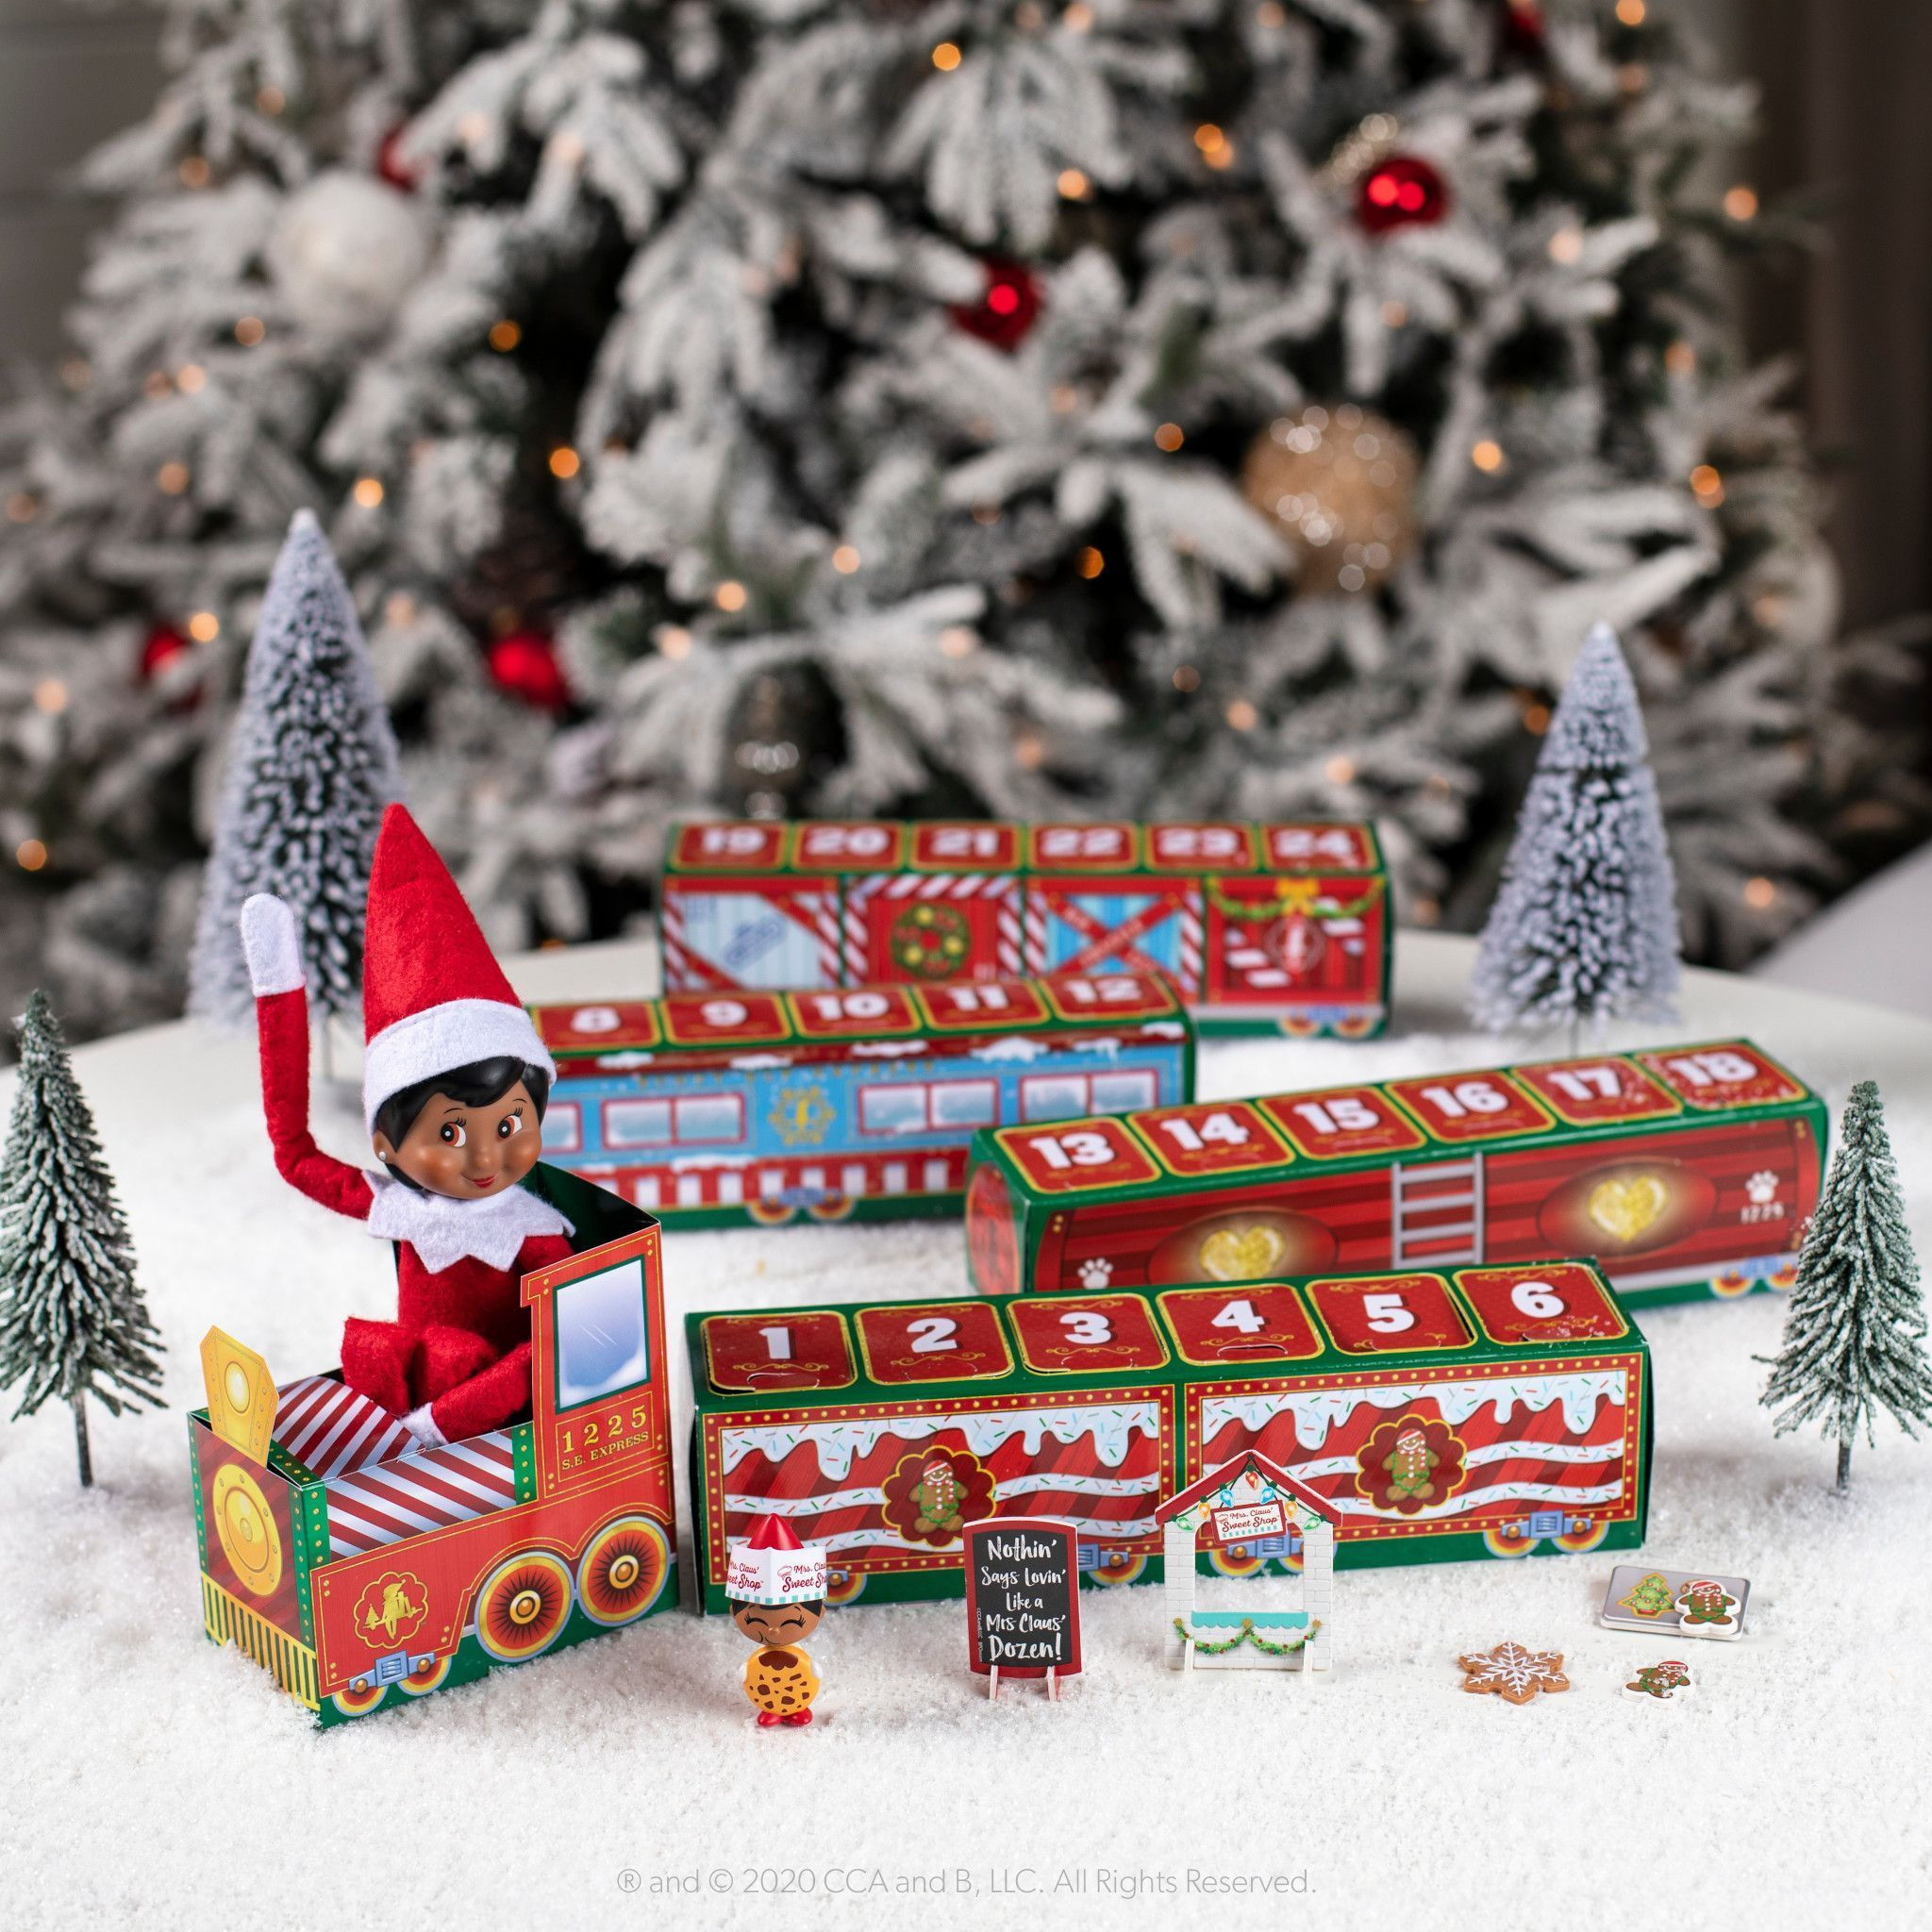 25 Adorable Elf On The Shelf Accessories Advent Calendar Pets And More For Your Elf